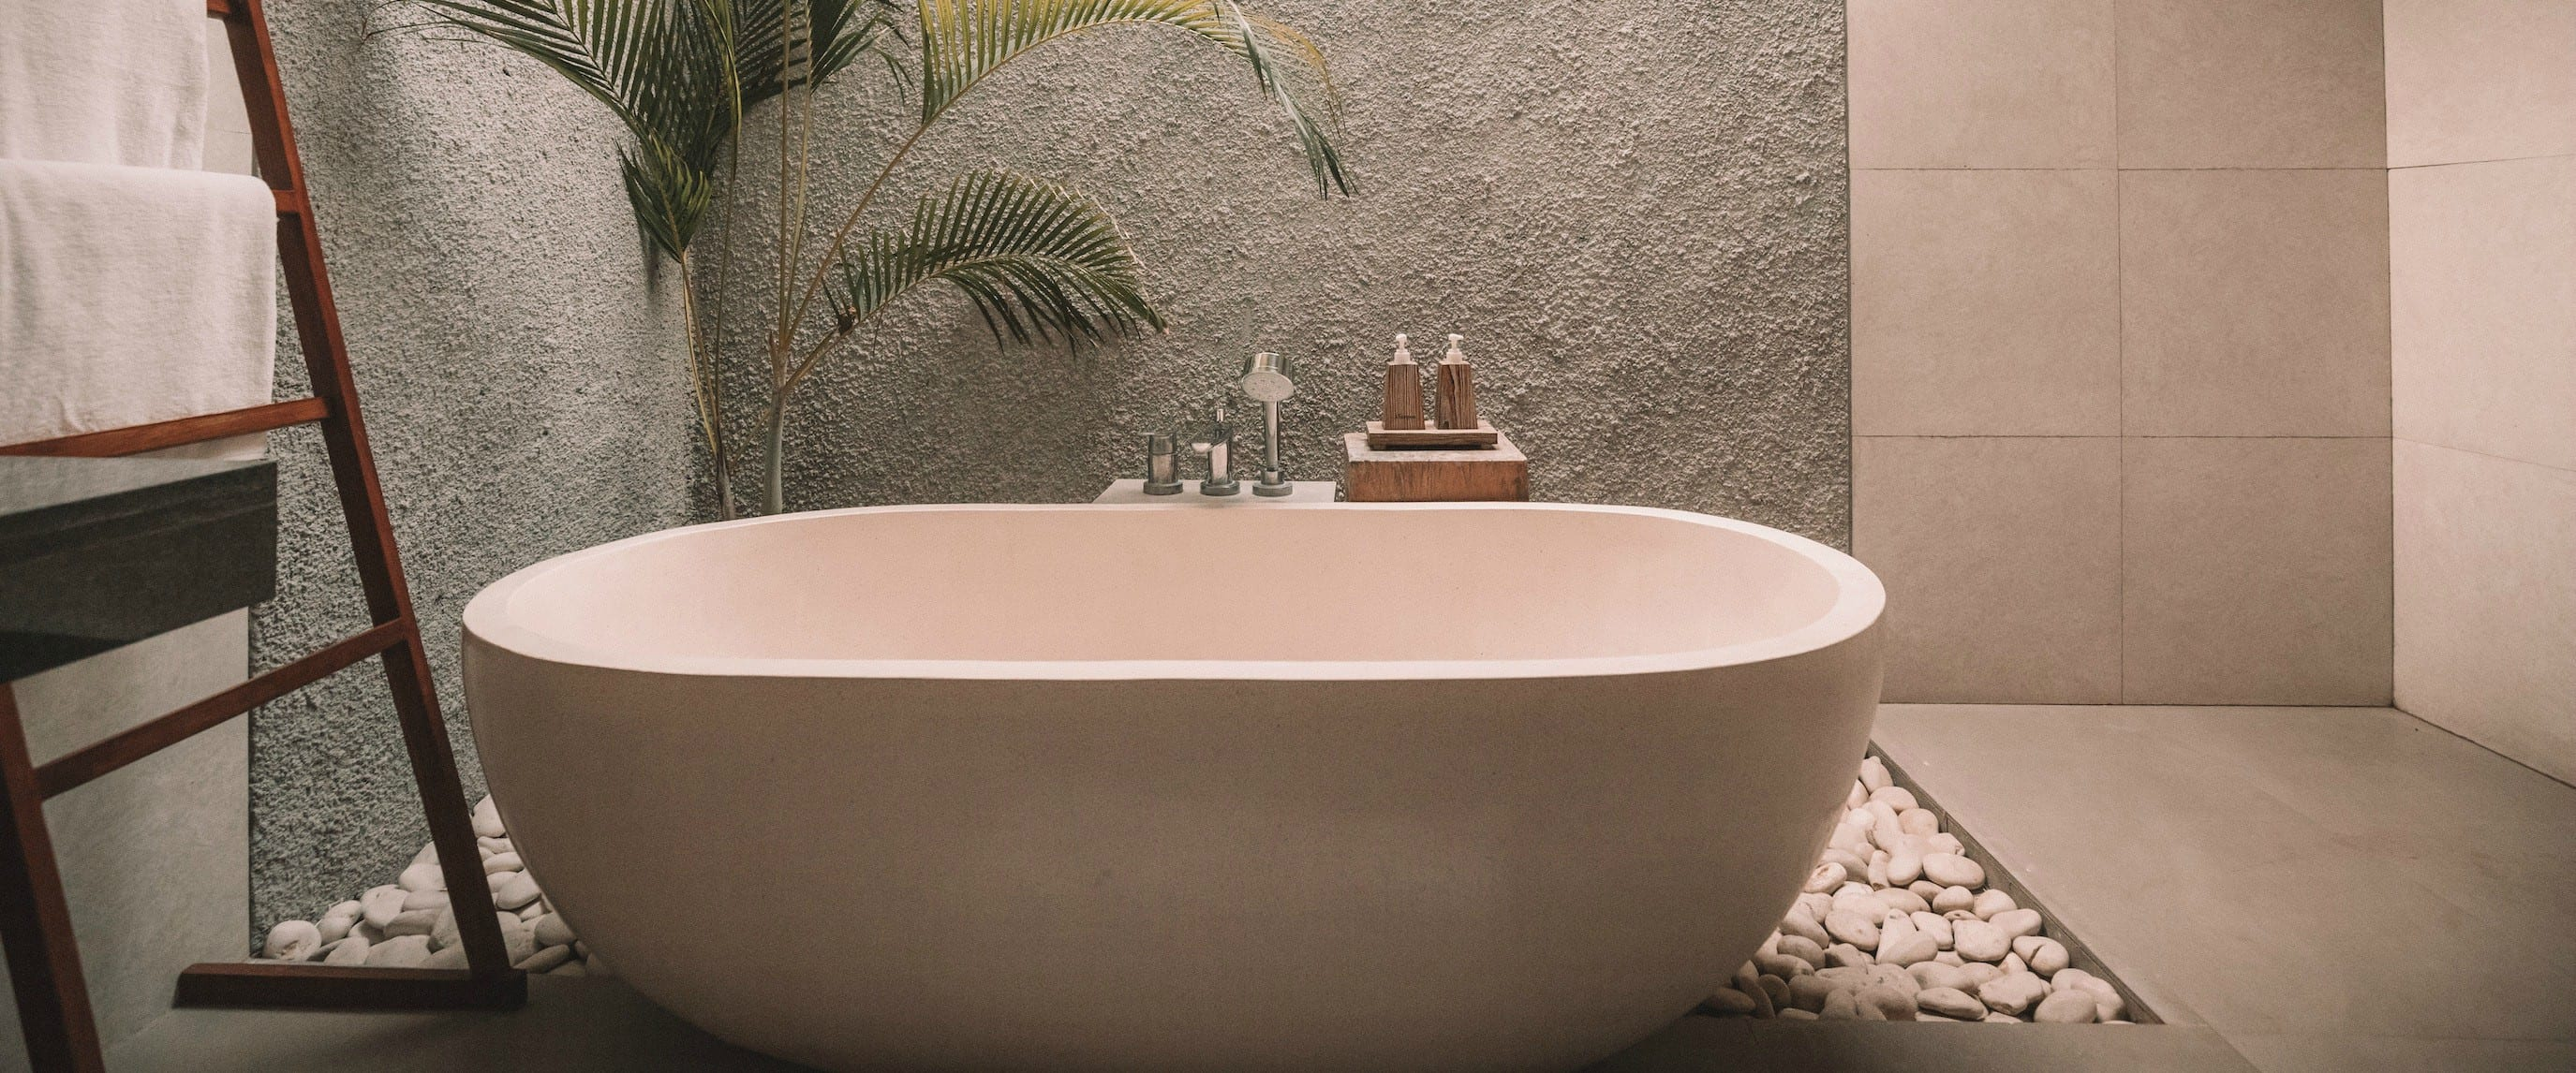 Top 5 Bathroom Trends For 2019